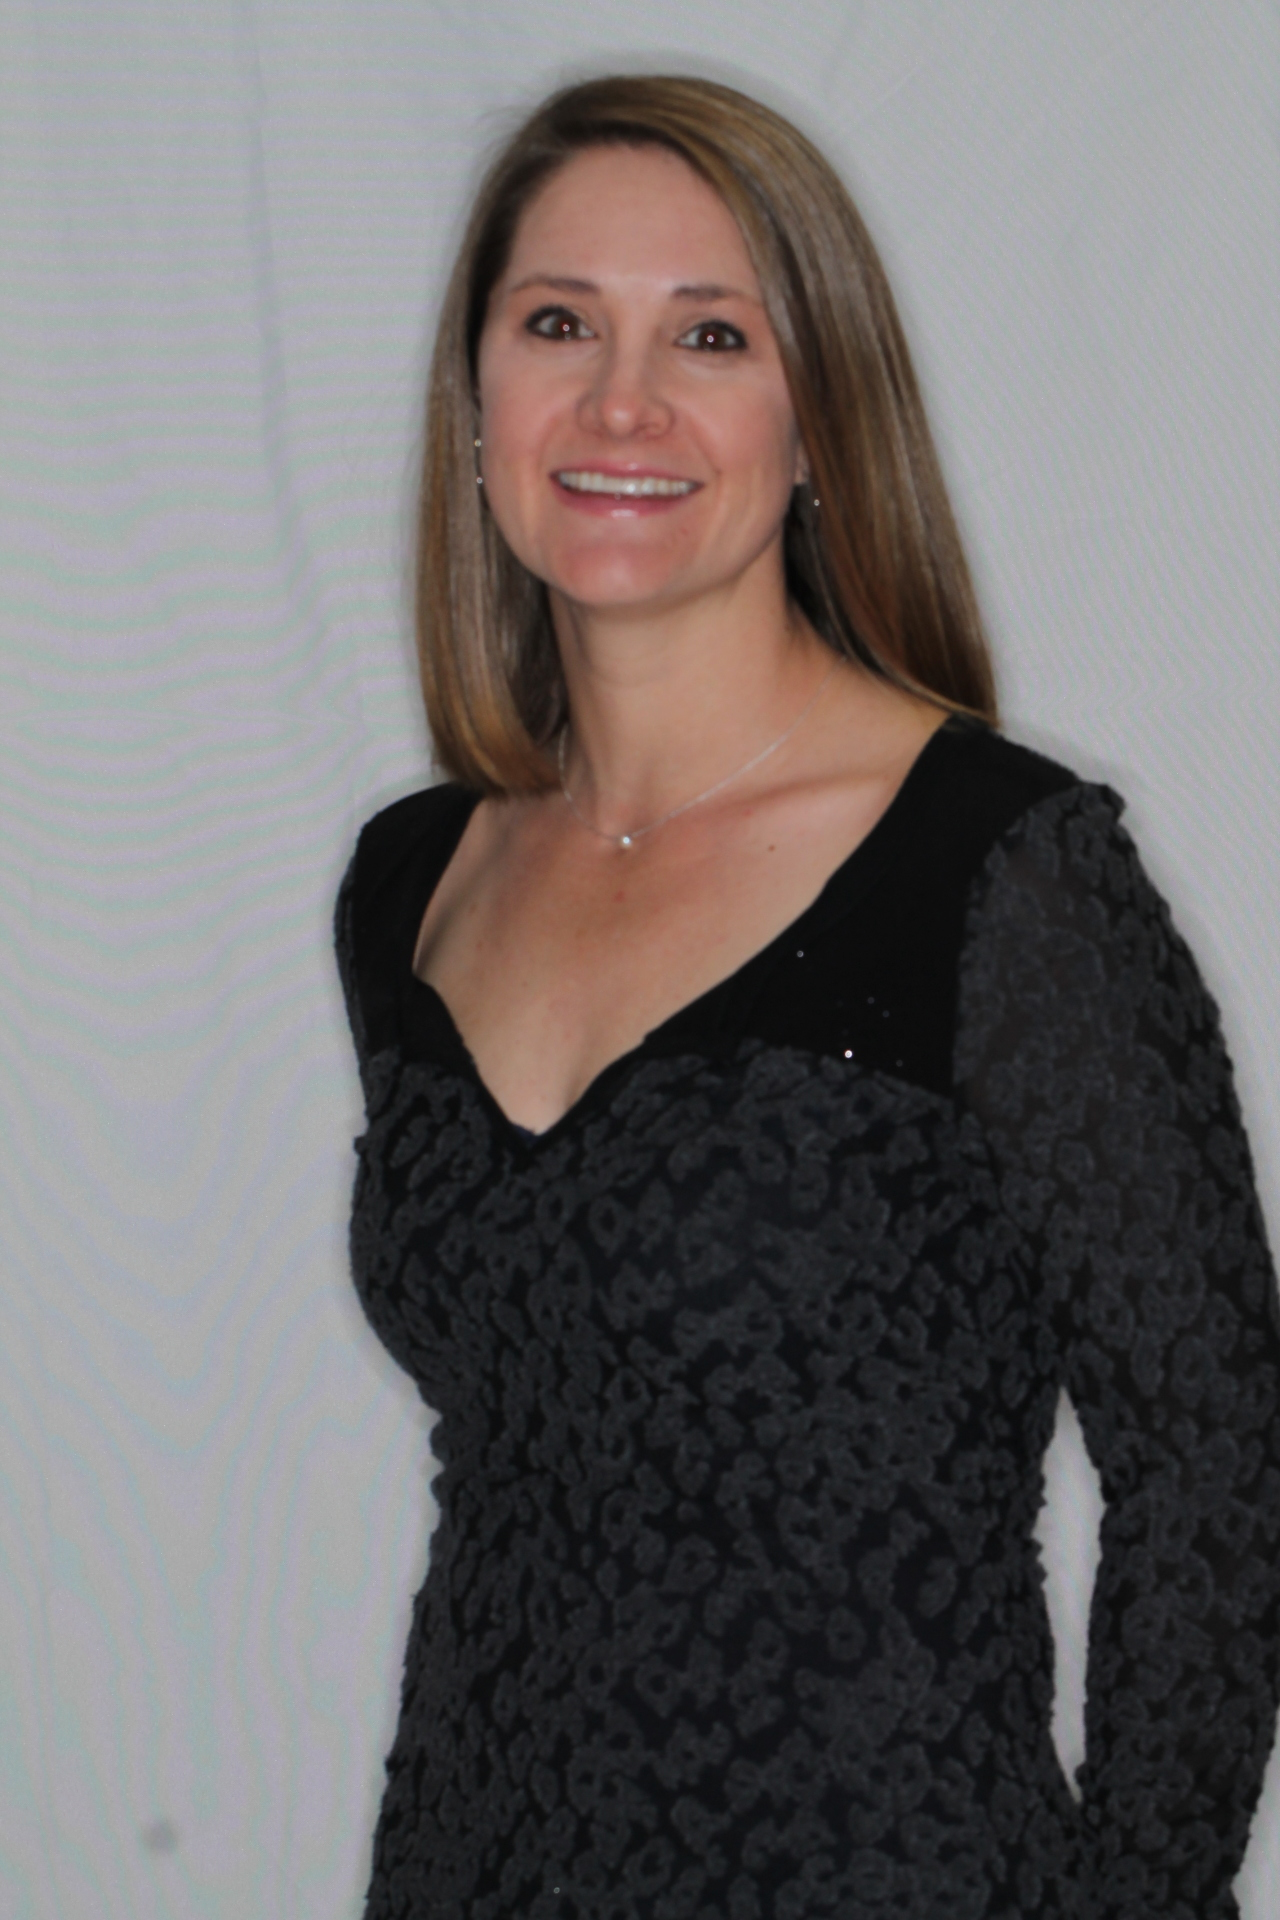 Dr. Michelle Luikens, DMD